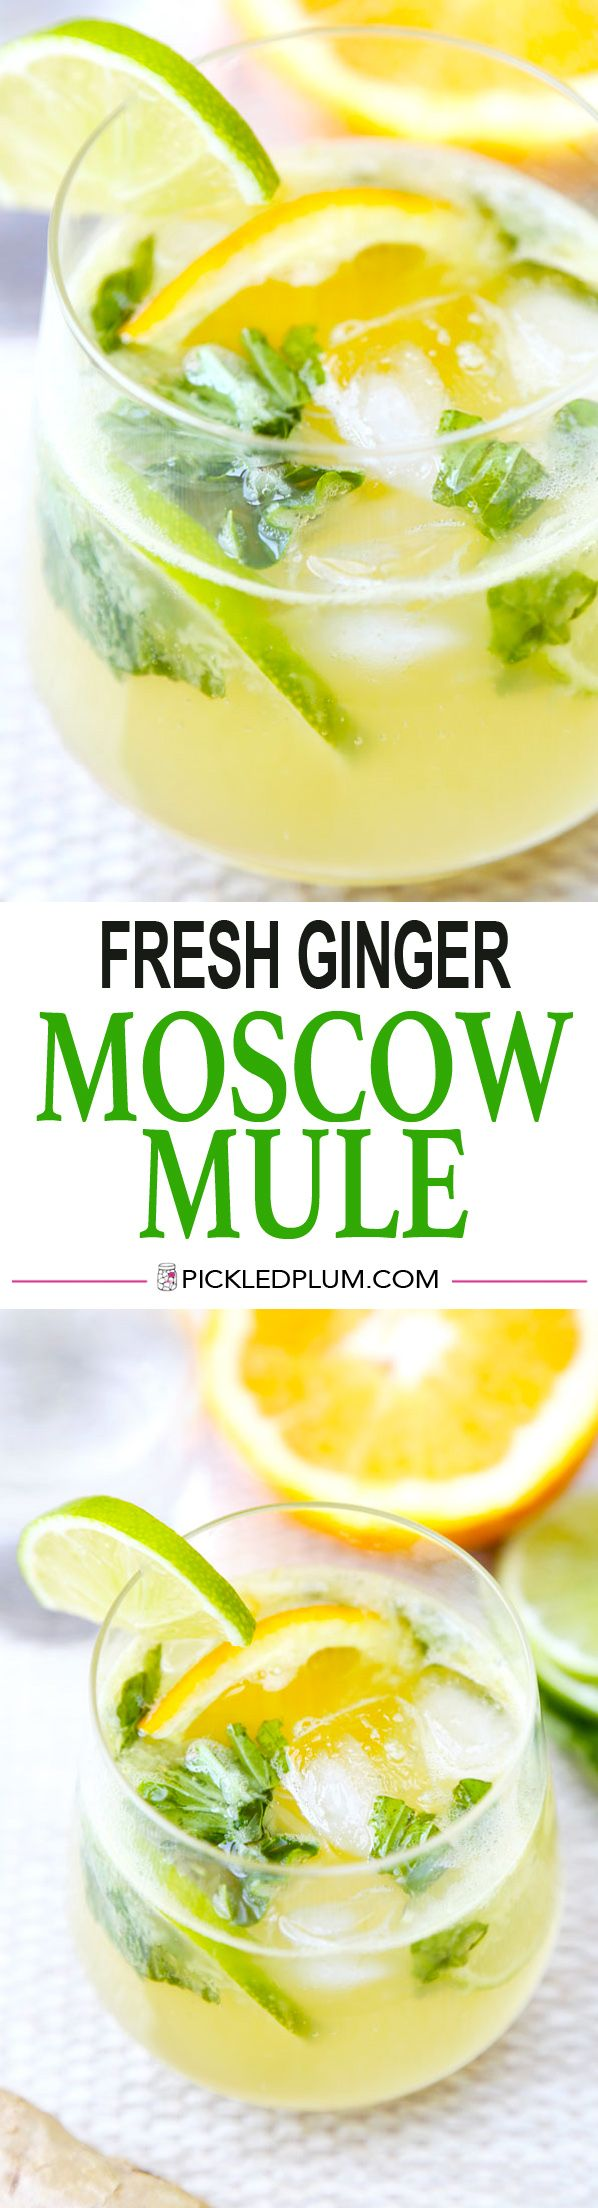 Fresh Orange and Ginger Moscow Mule with Muddled Basil. A healthier version of the classic - Delightfully Refreshing! Vegan - Gluten-Free Recipe